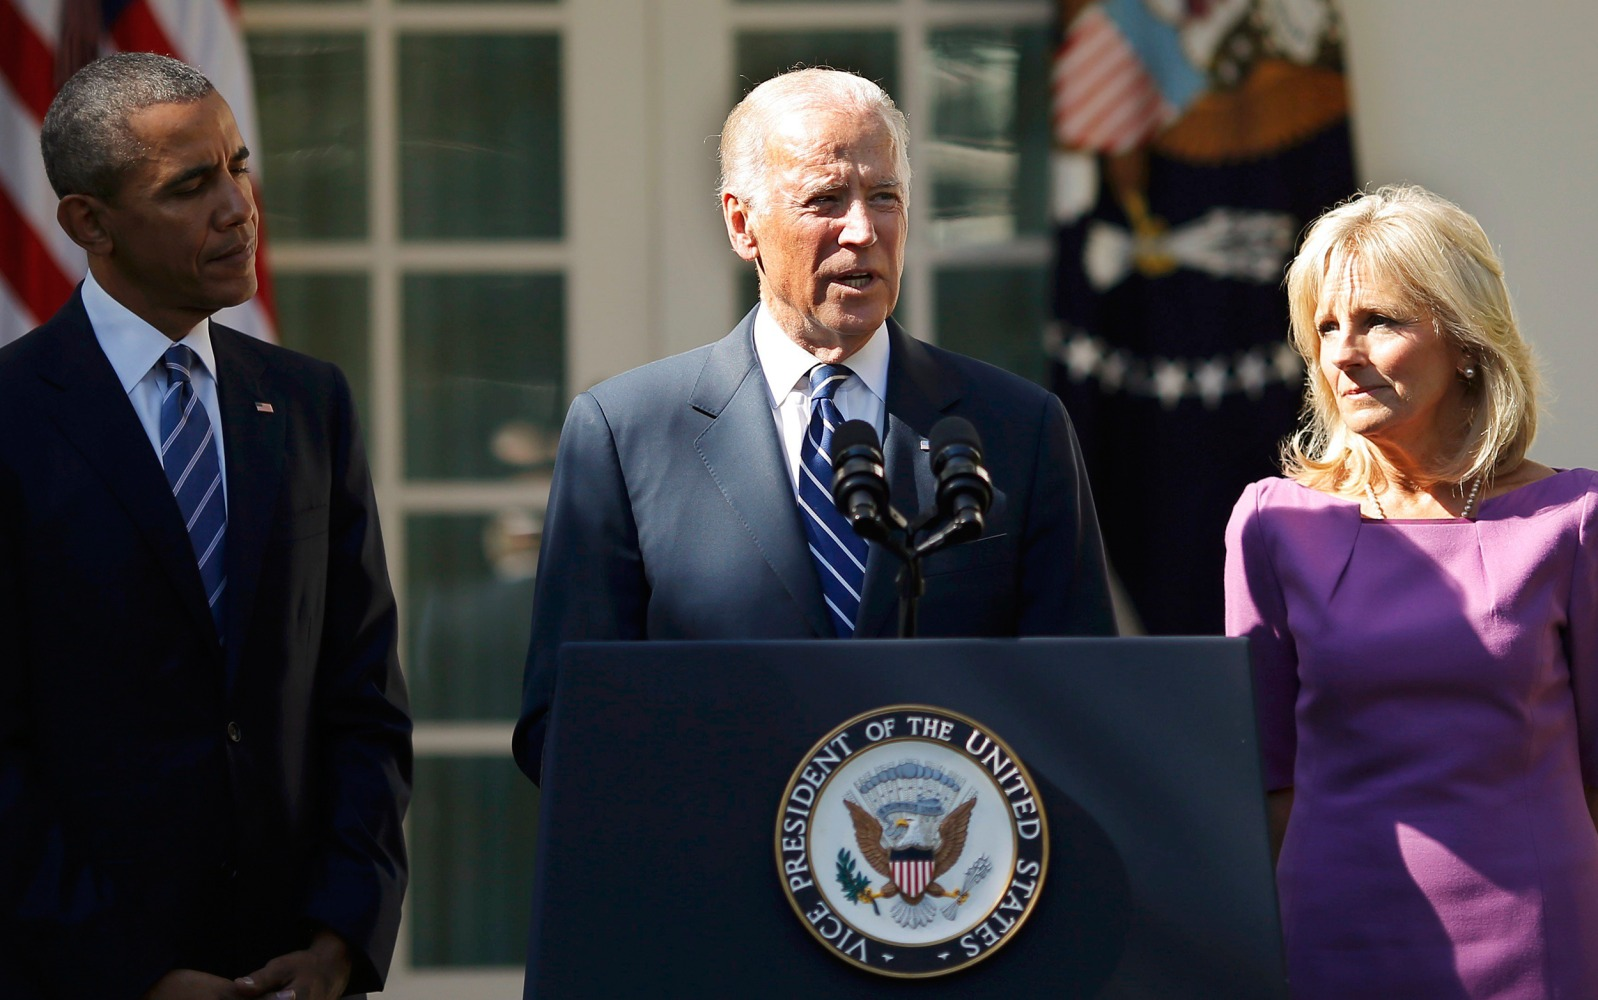 Biden: I Wouldn't Have Replaced Hillary